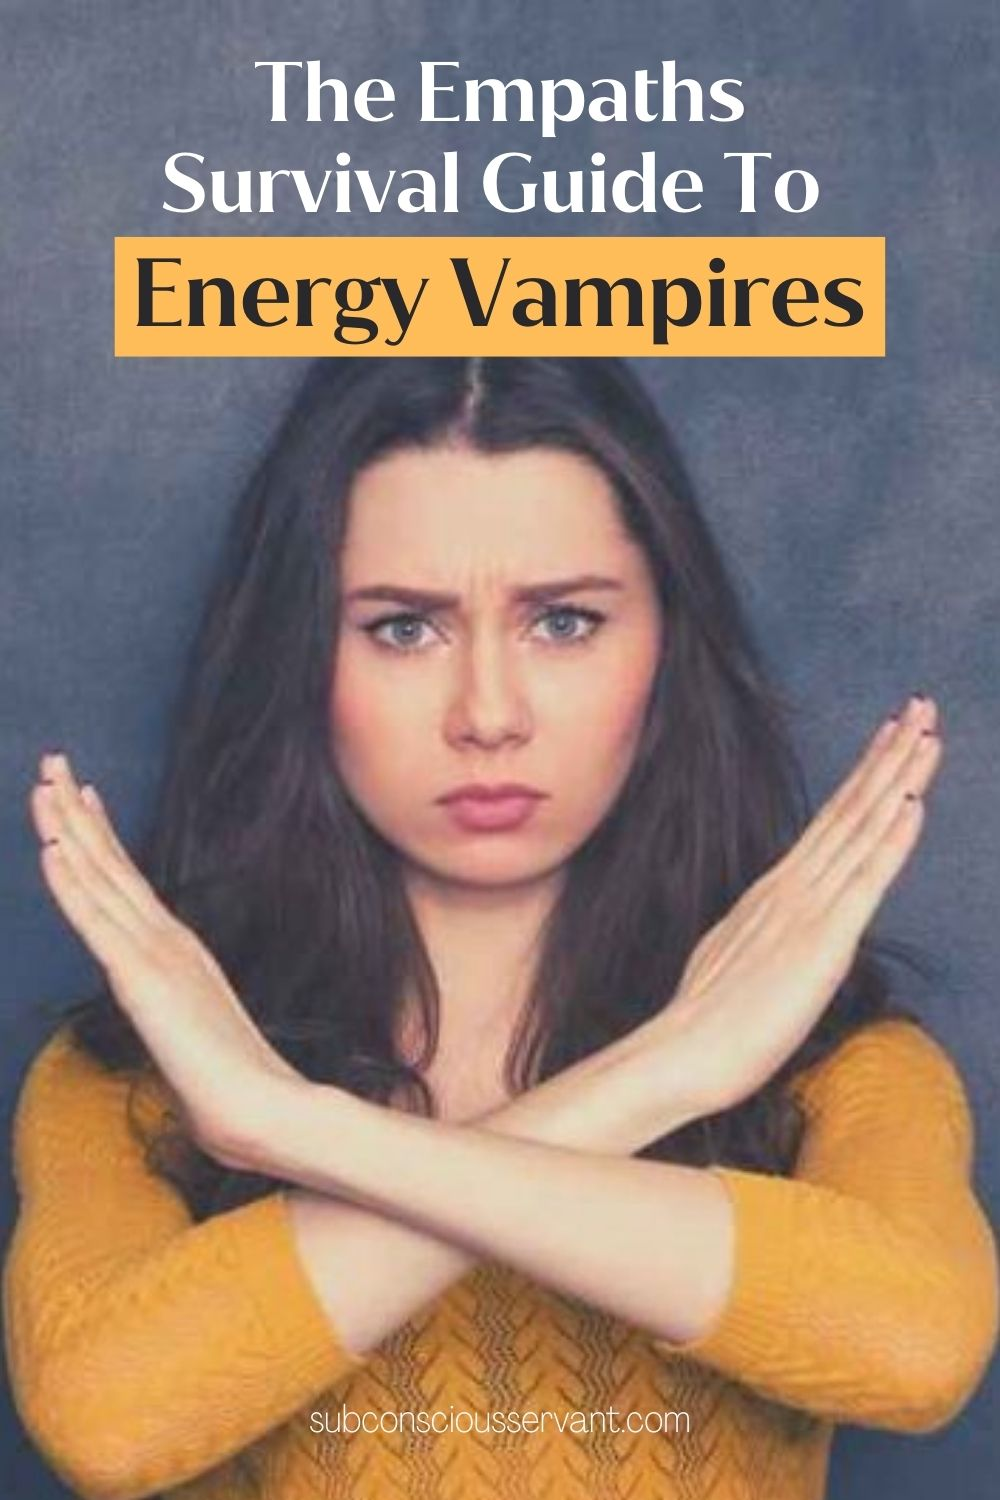 The Empaths Survival Guide To Energy Vampires